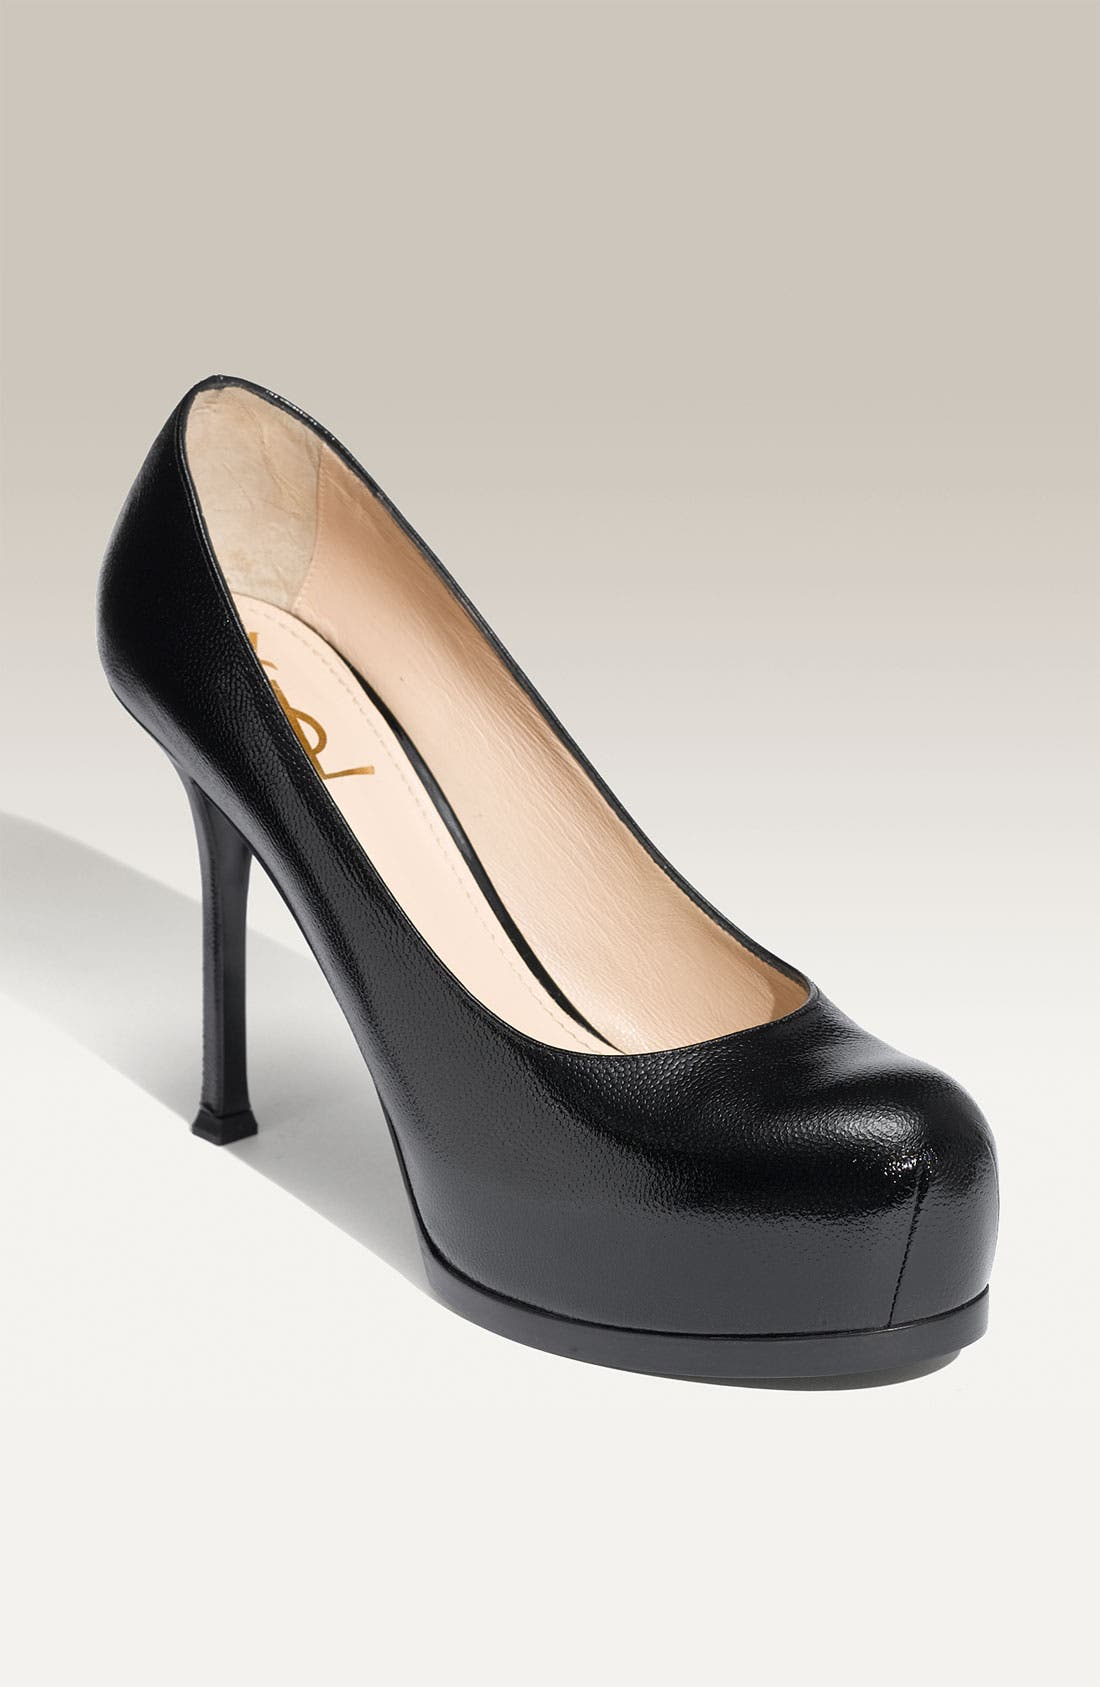 Alternate Image 1 Selected - Saint Laurent 'Tribute Two' Platform Pump